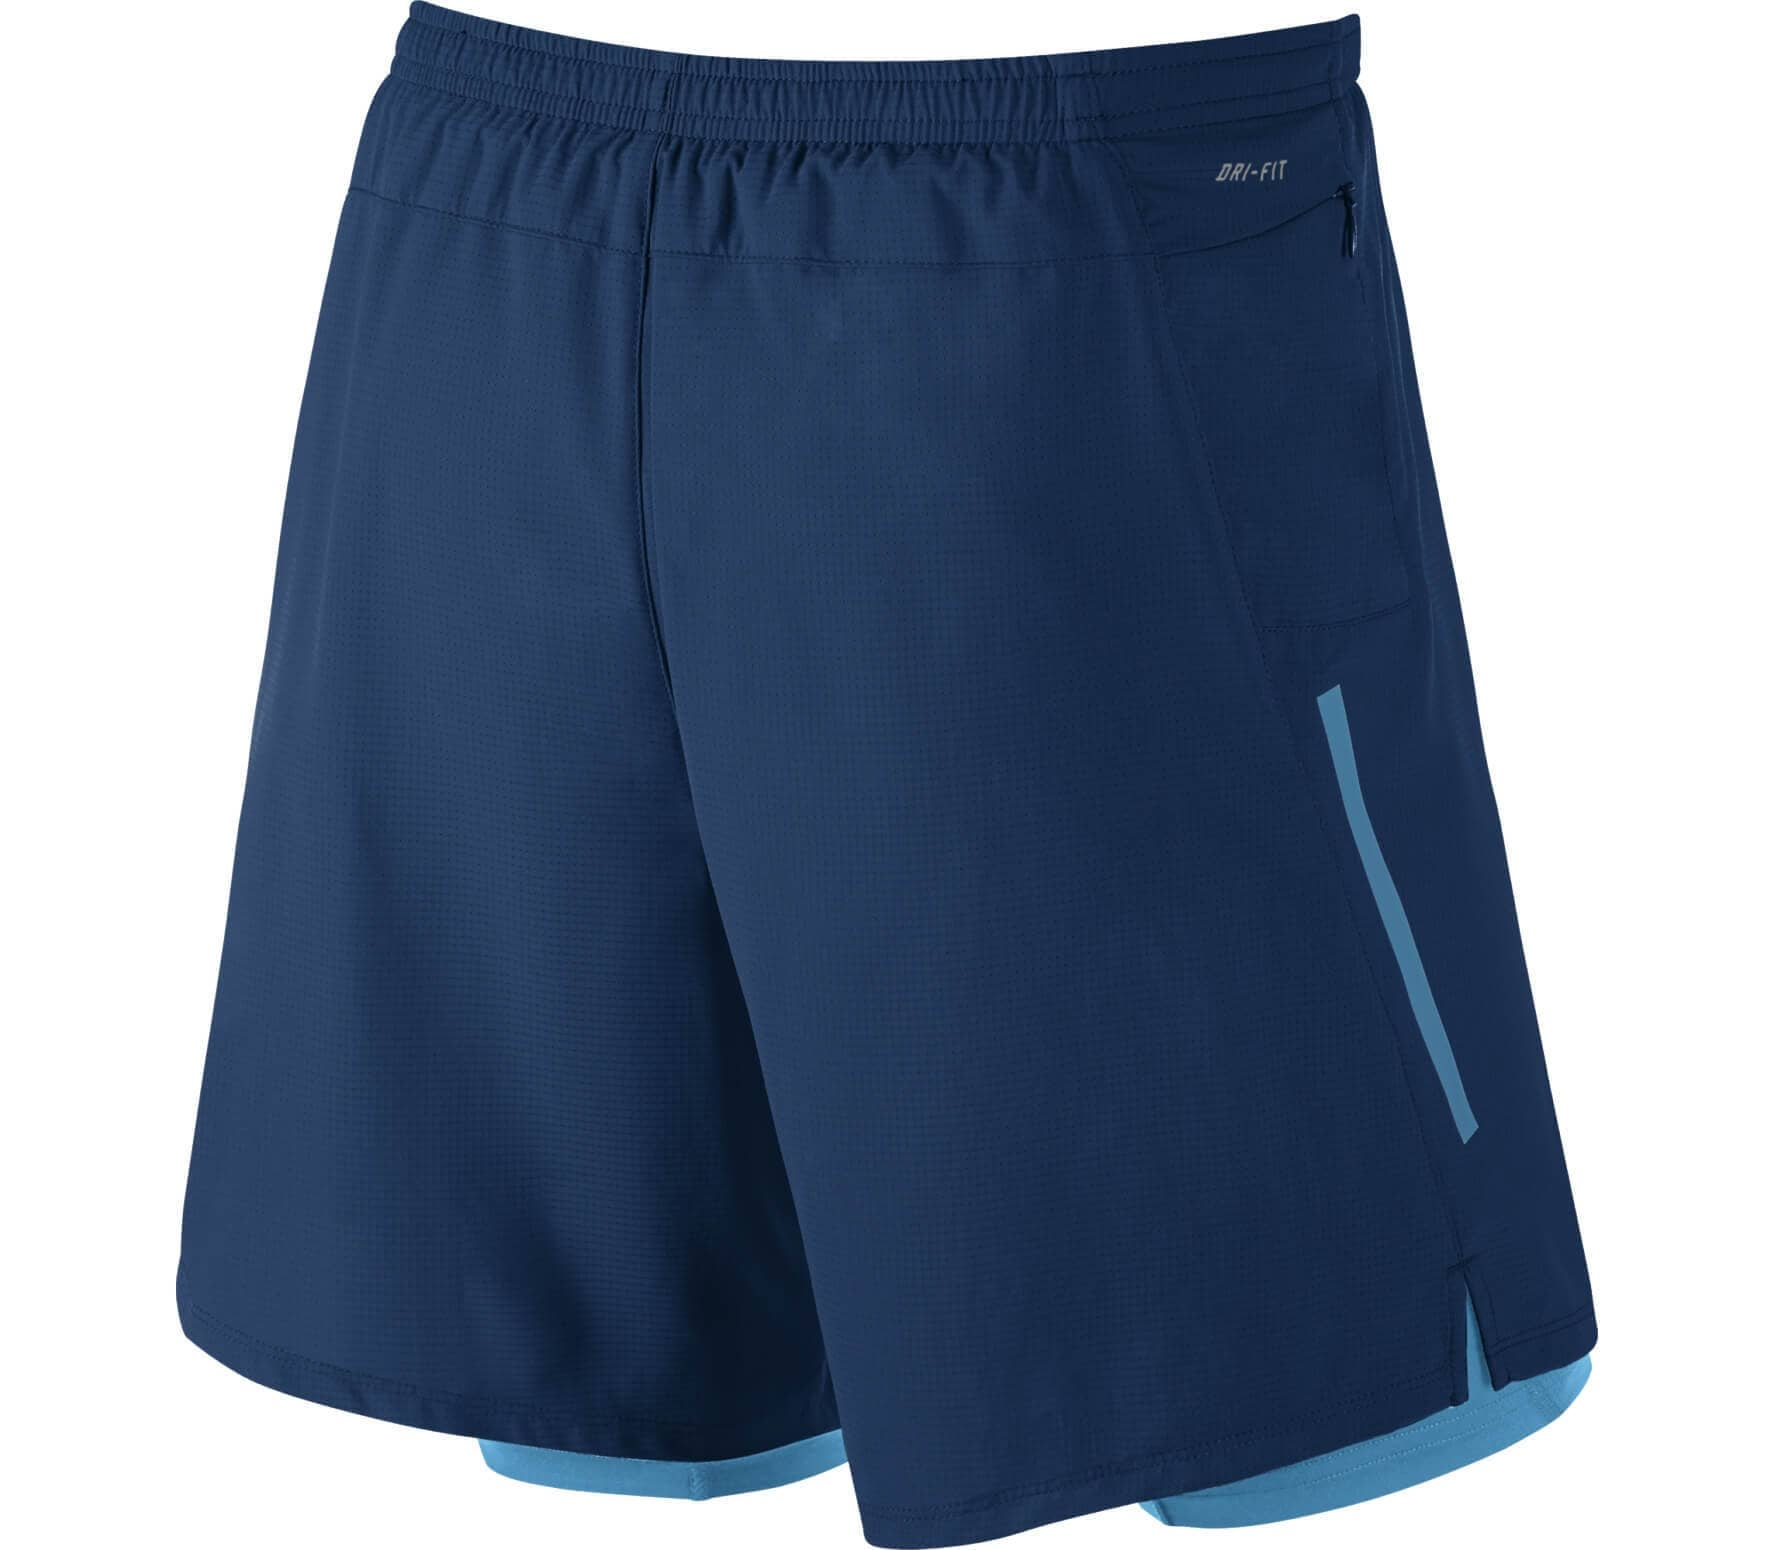 nice shoes new images of clearance prices Nike Phenom 2-in-1 7 Inch men's running shorts Men